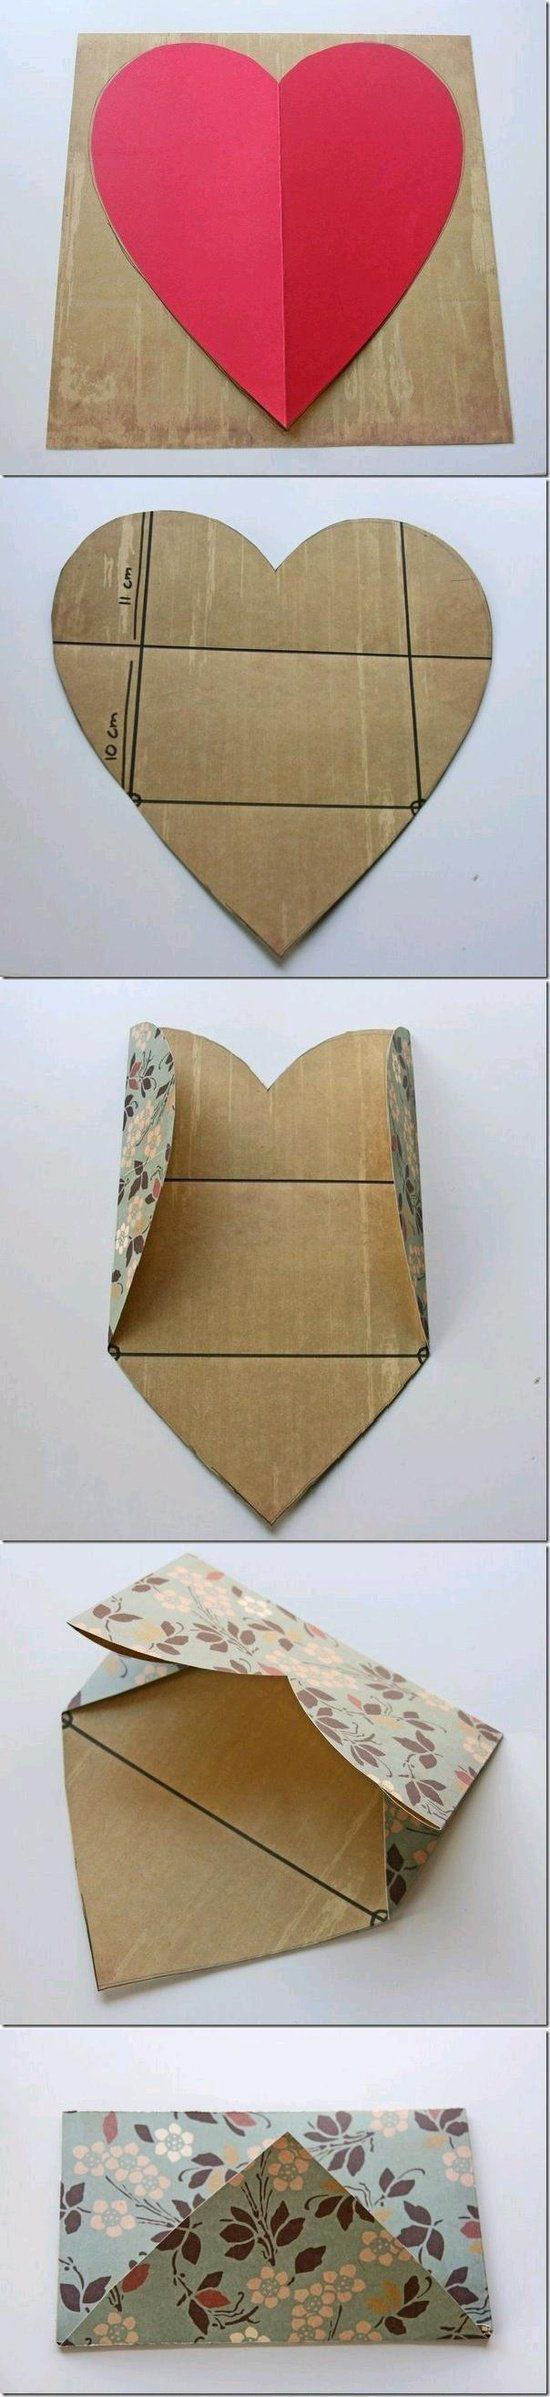 DIY – Create a nice envelope